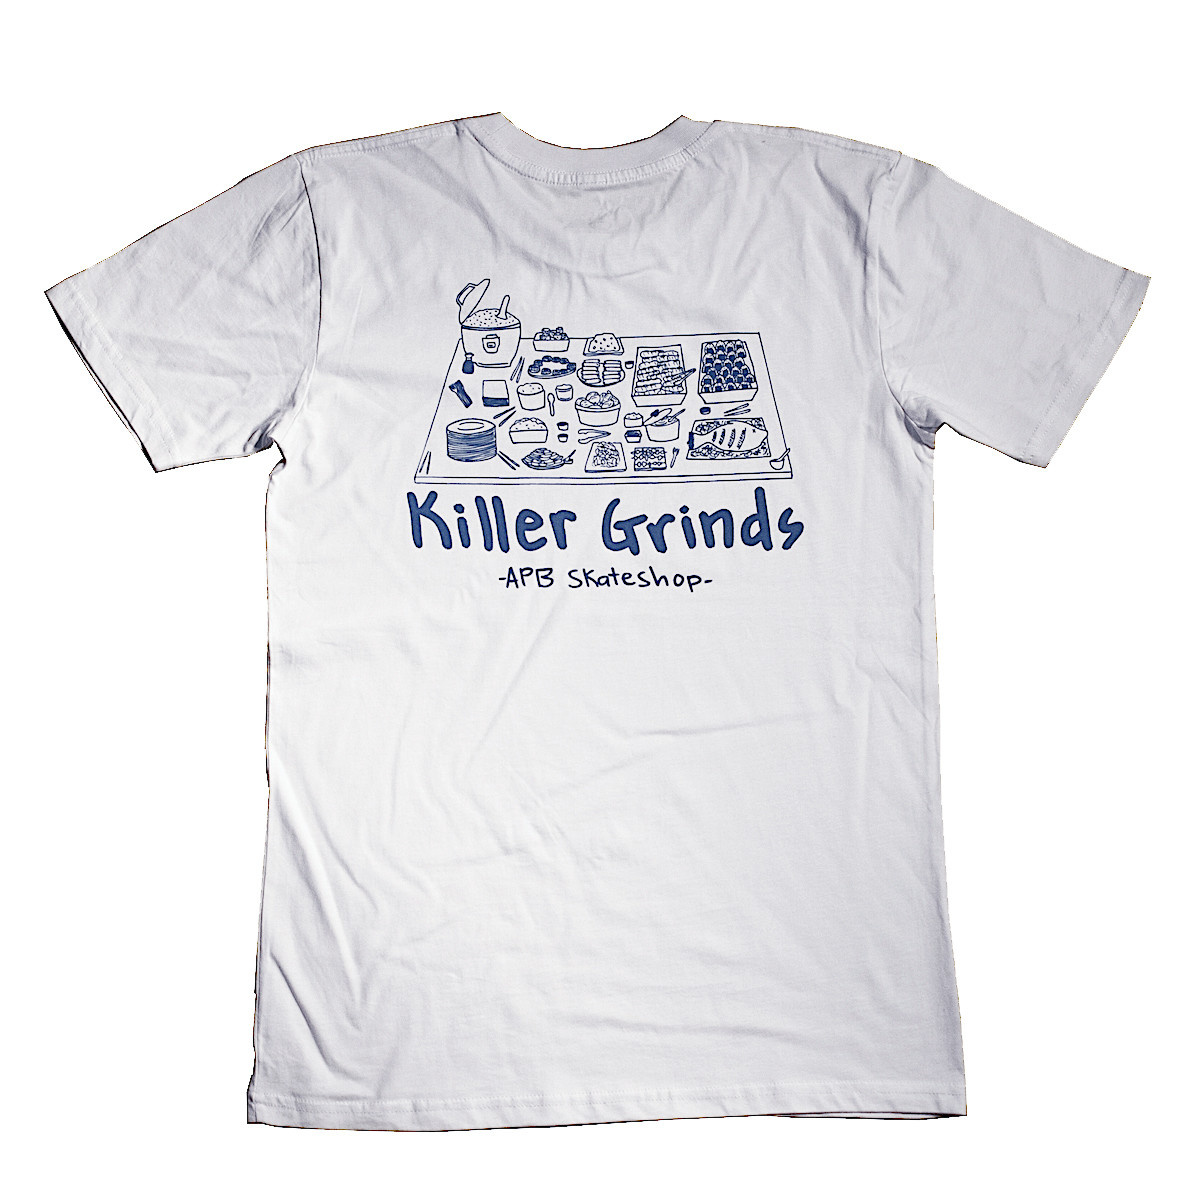 APB Skateshop APB Killer Grinds Tee White w/ Blue